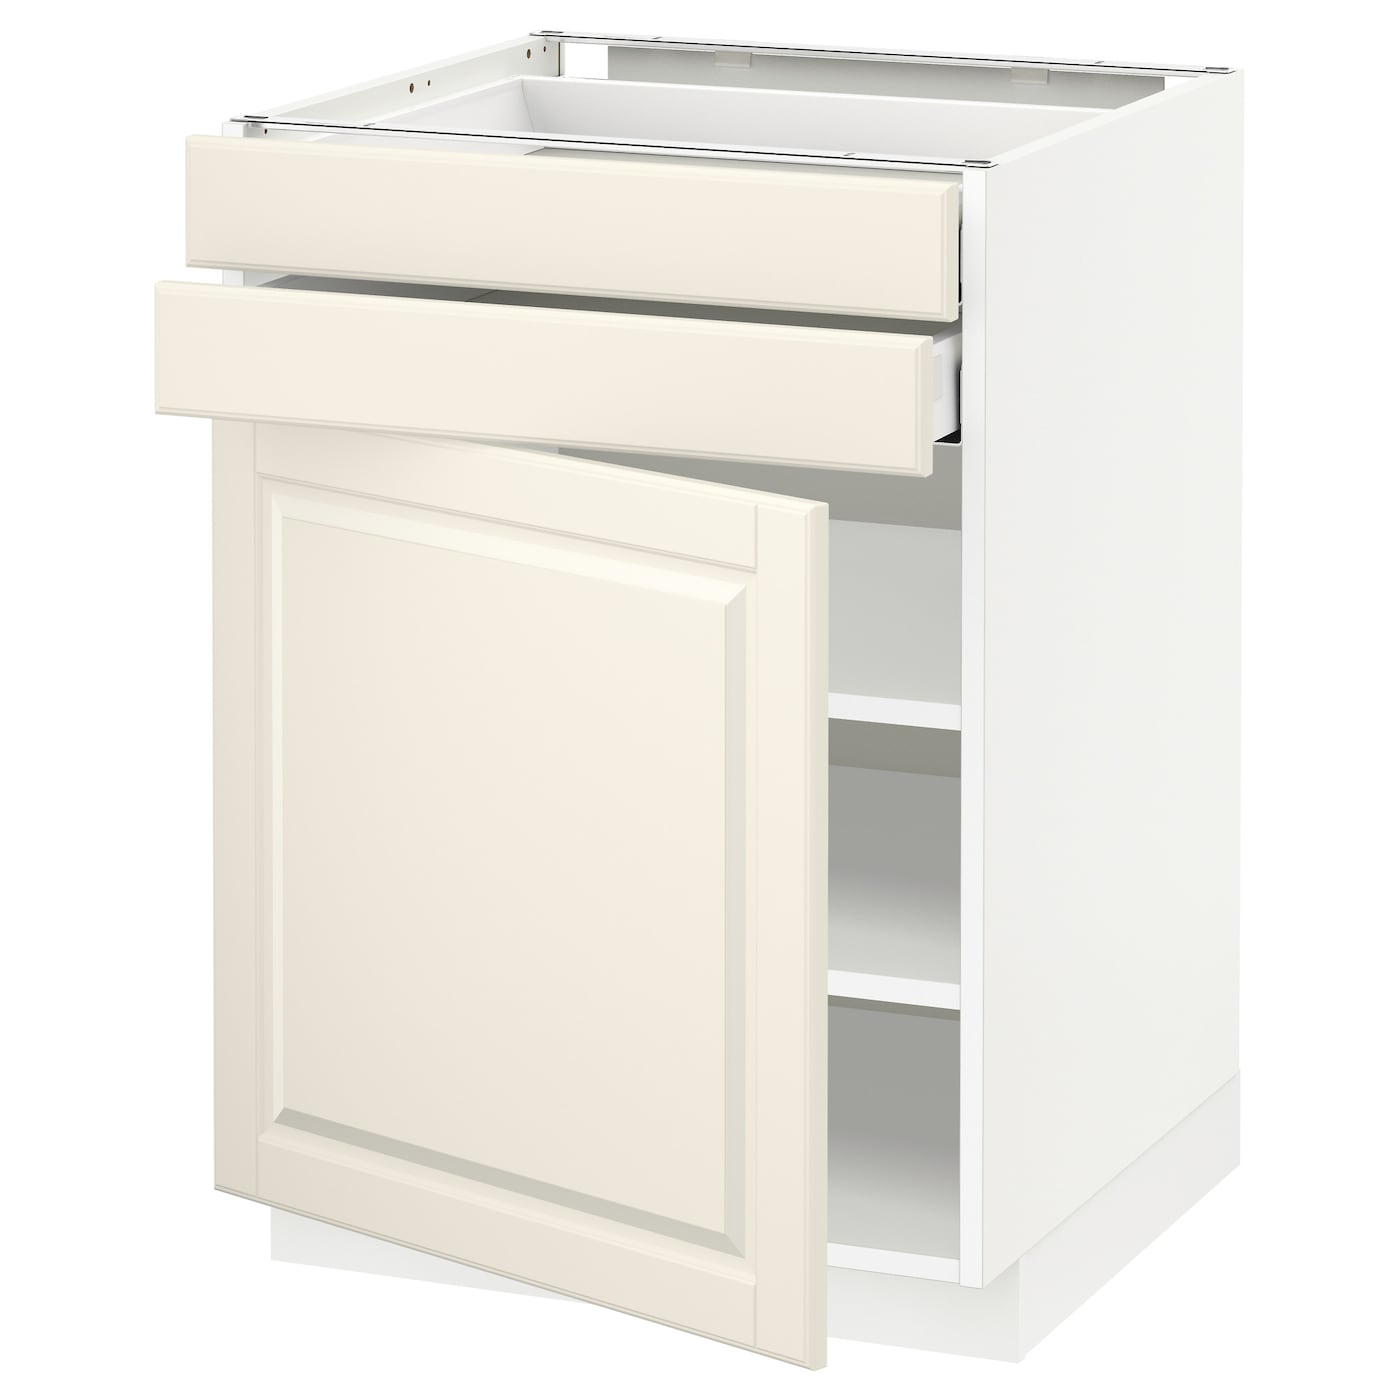 metod maximera base cabinet w door 2 drawers white bodbyn off white 60 x 60 cm ikea. Black Bedroom Furniture Sets. Home Design Ideas